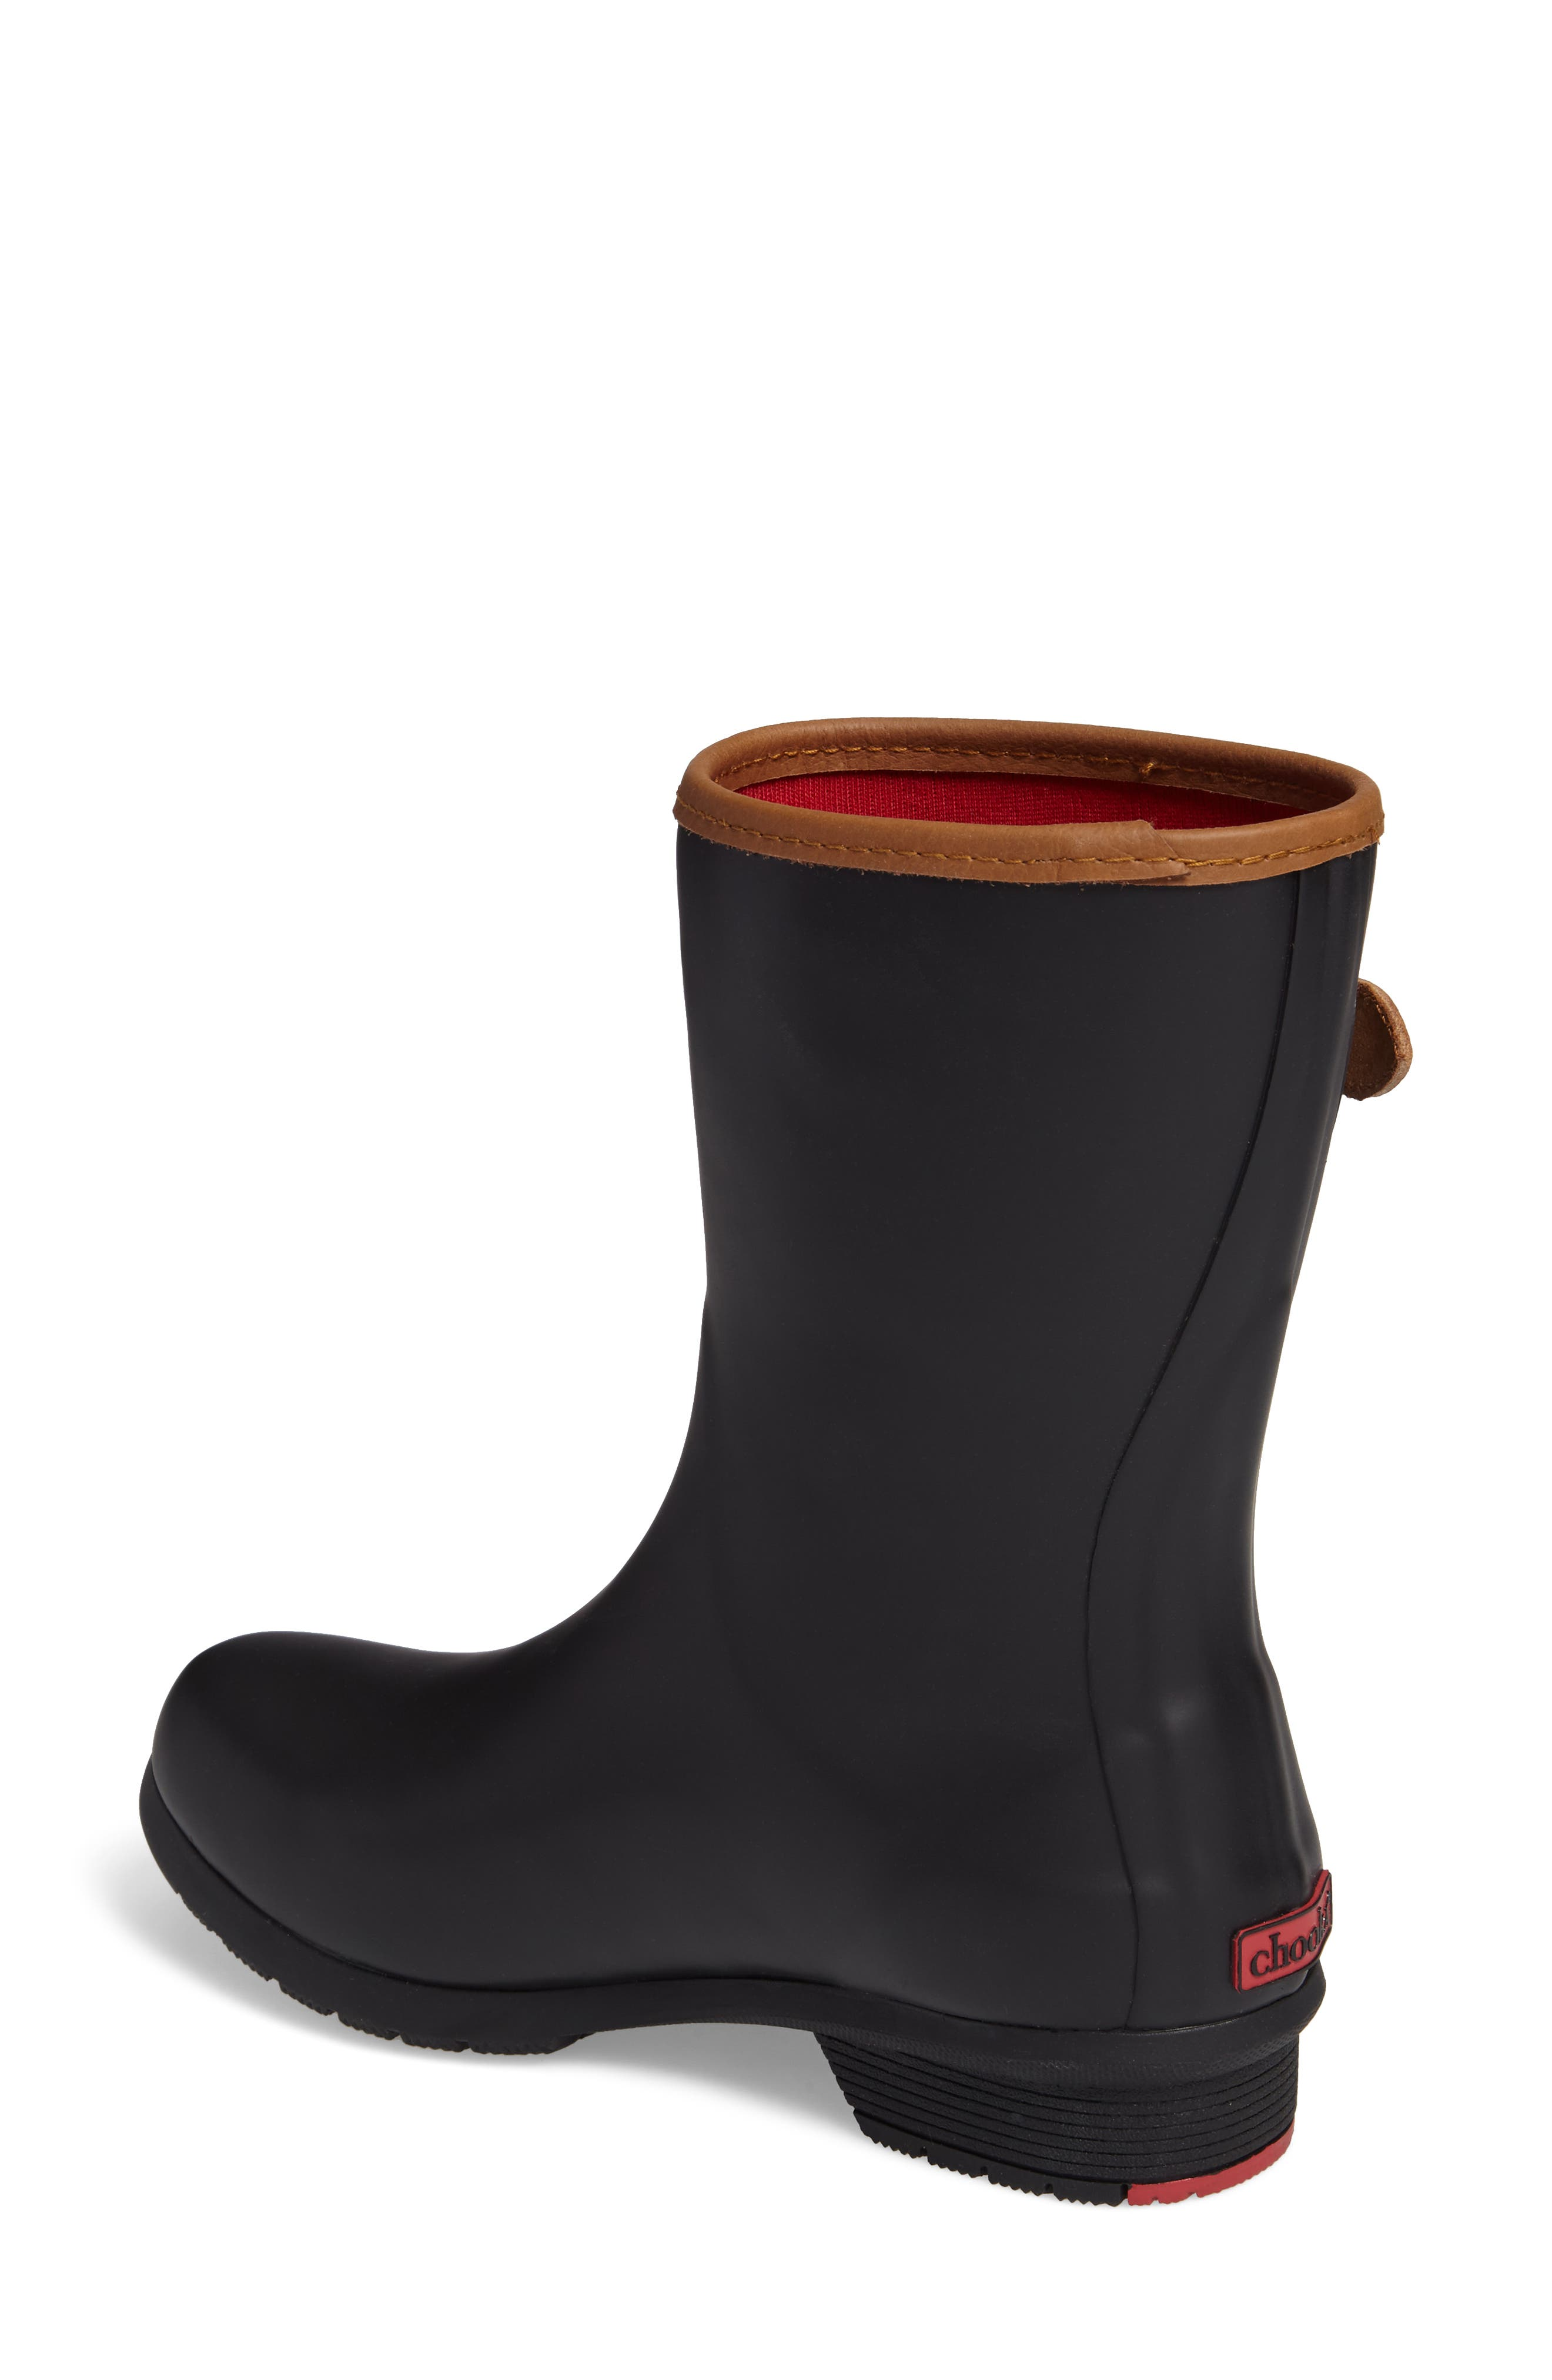 City Solid Mid Height Rain Boot,                             Alternate thumbnail 2, color,                             001